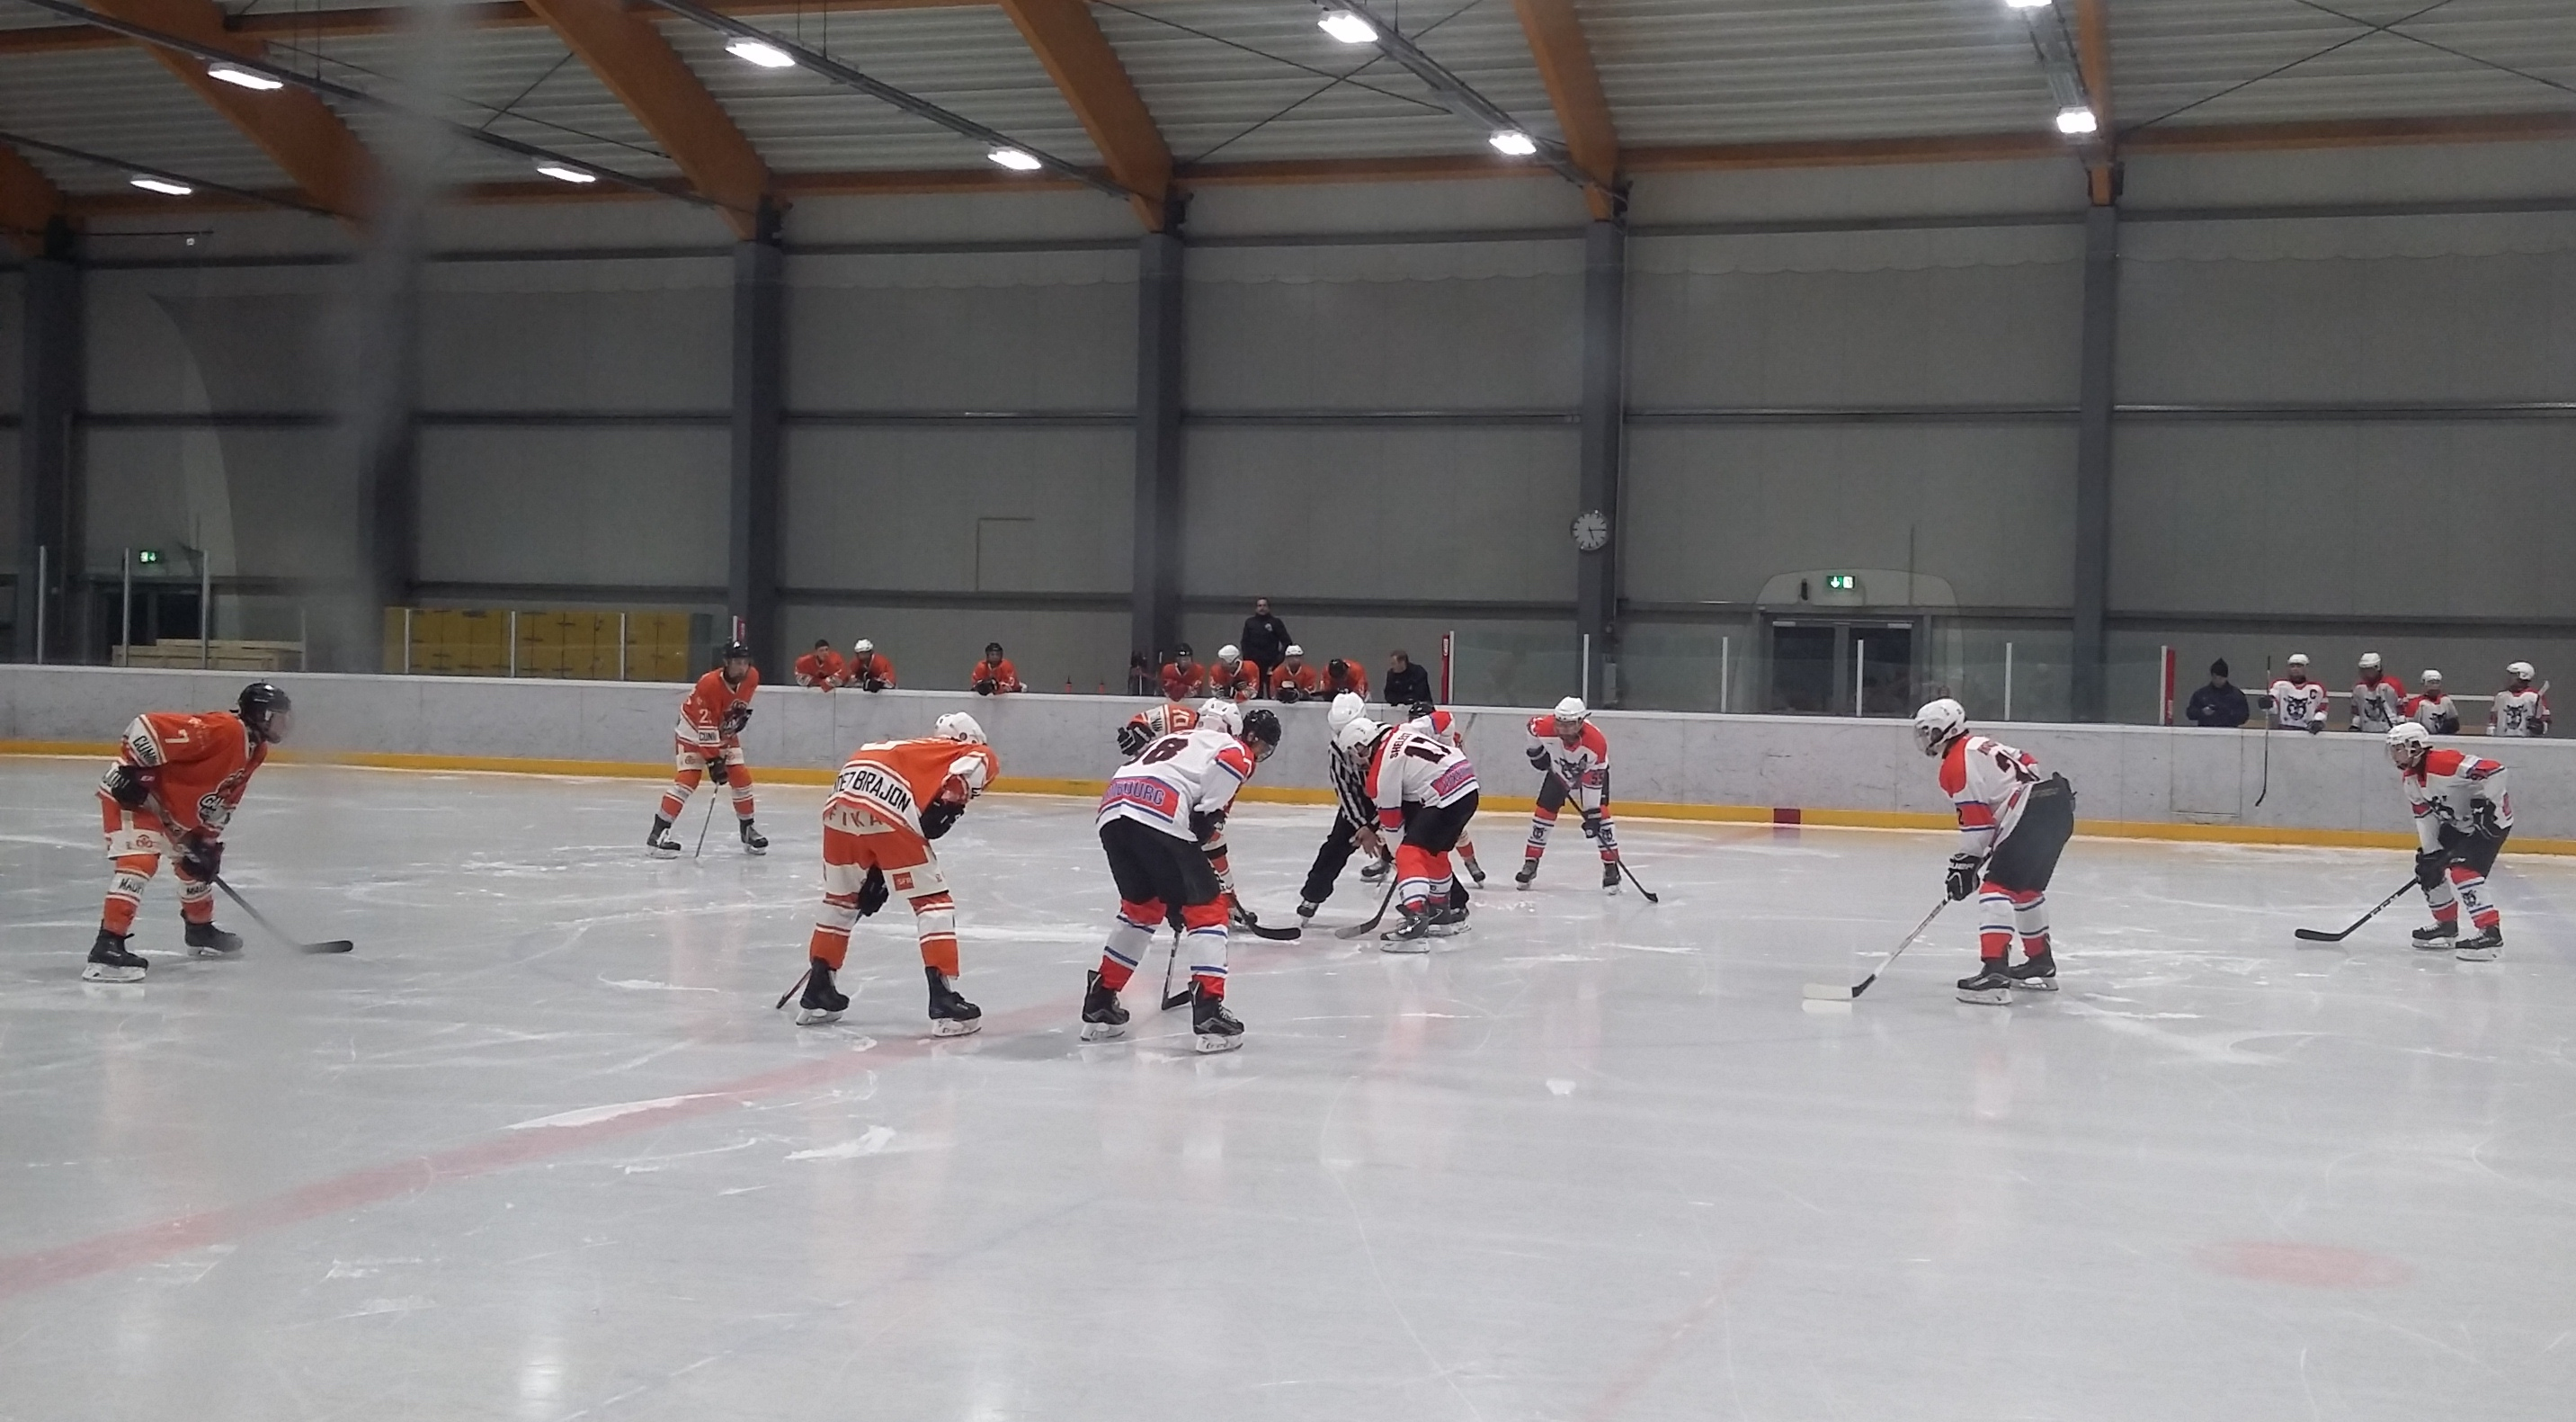 U17 Lux-EPINAL saturday 18th. Strong game!